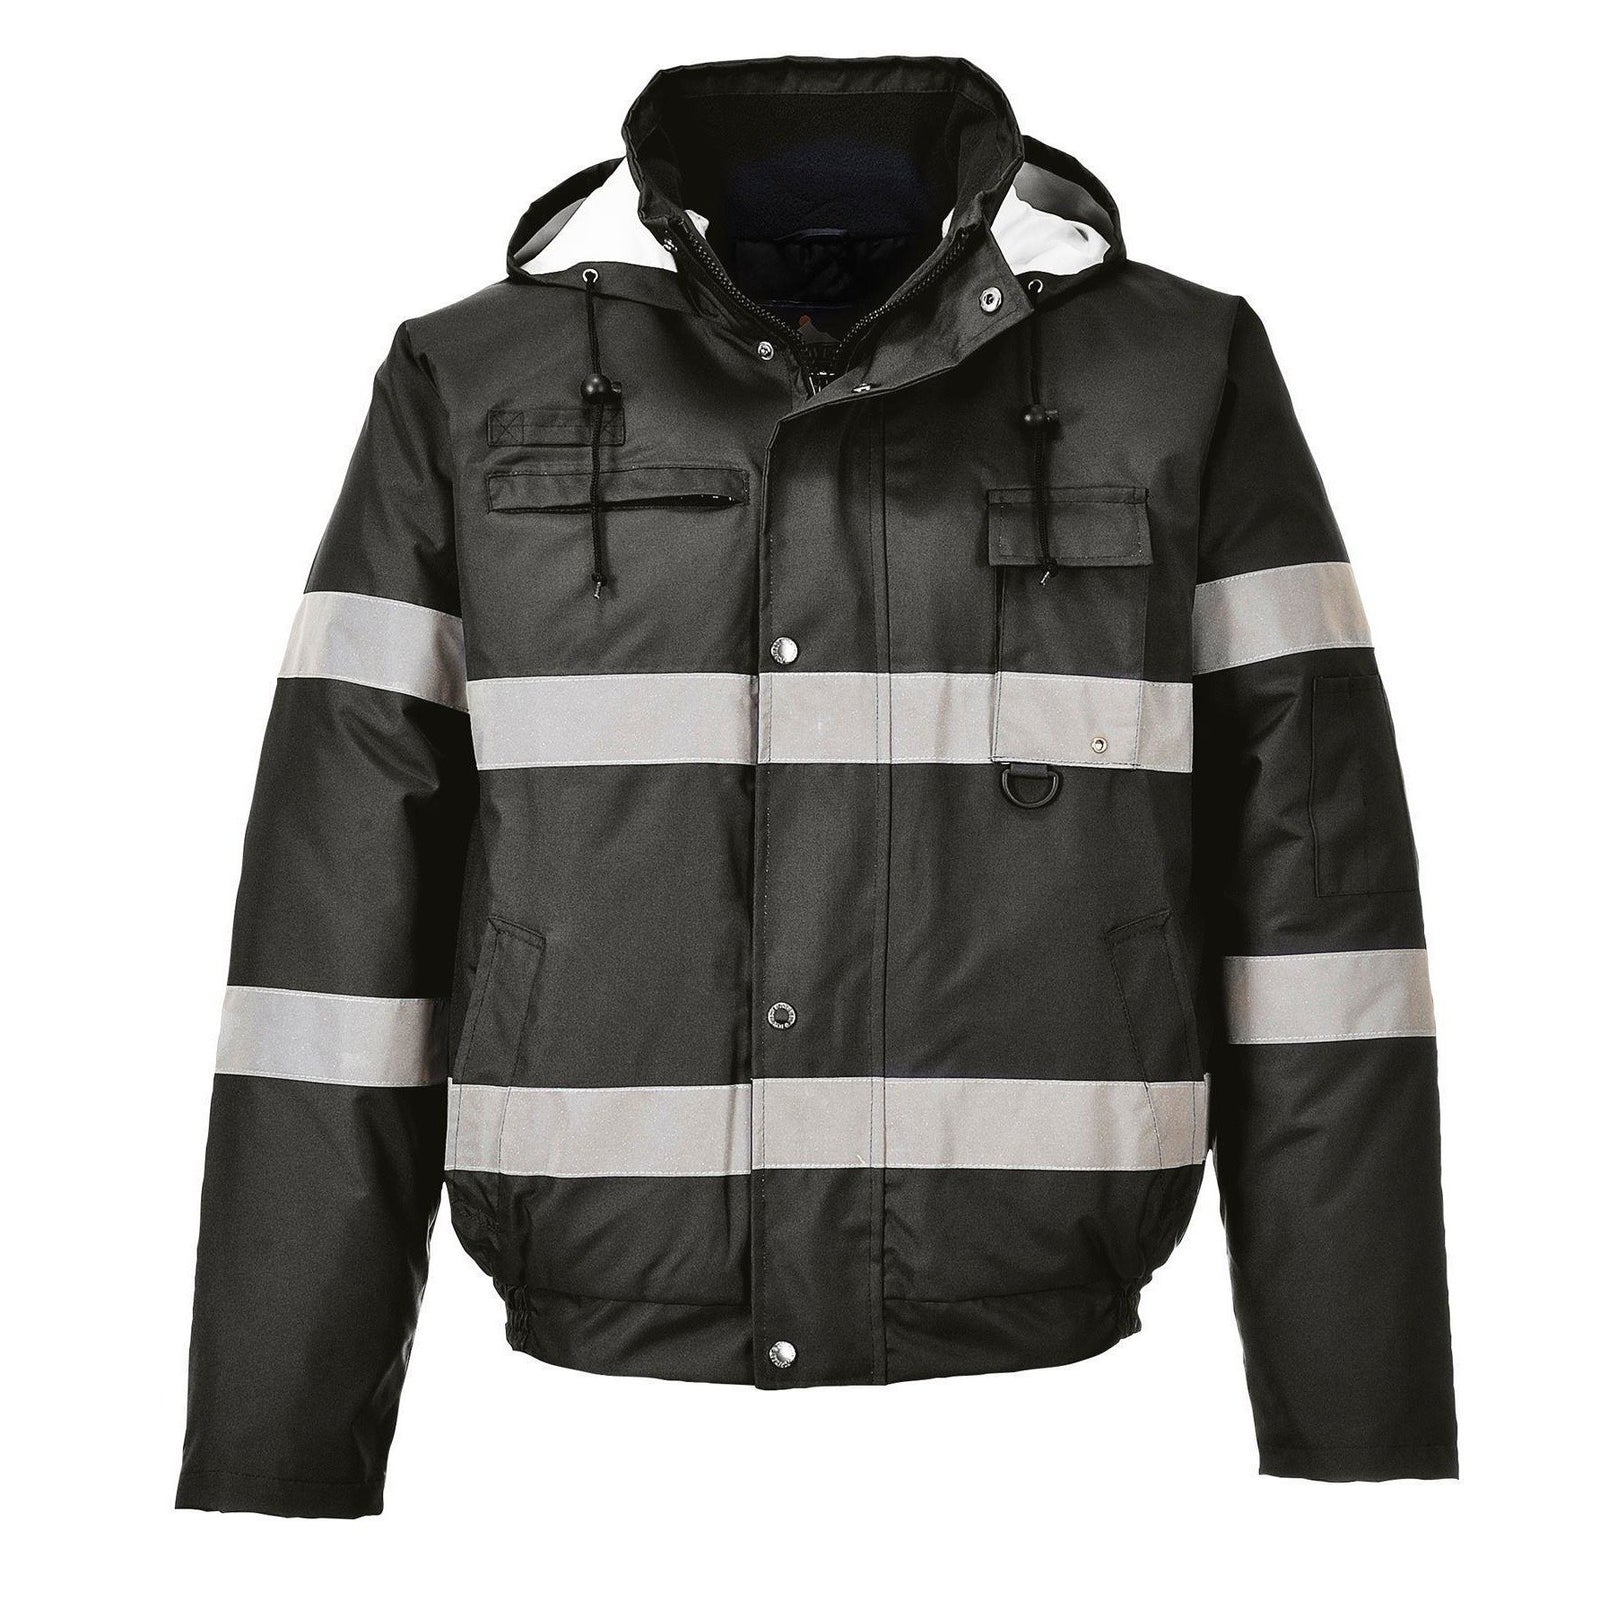 Portwest Iona Lite Bomber Jacket S434 - reid outdoors